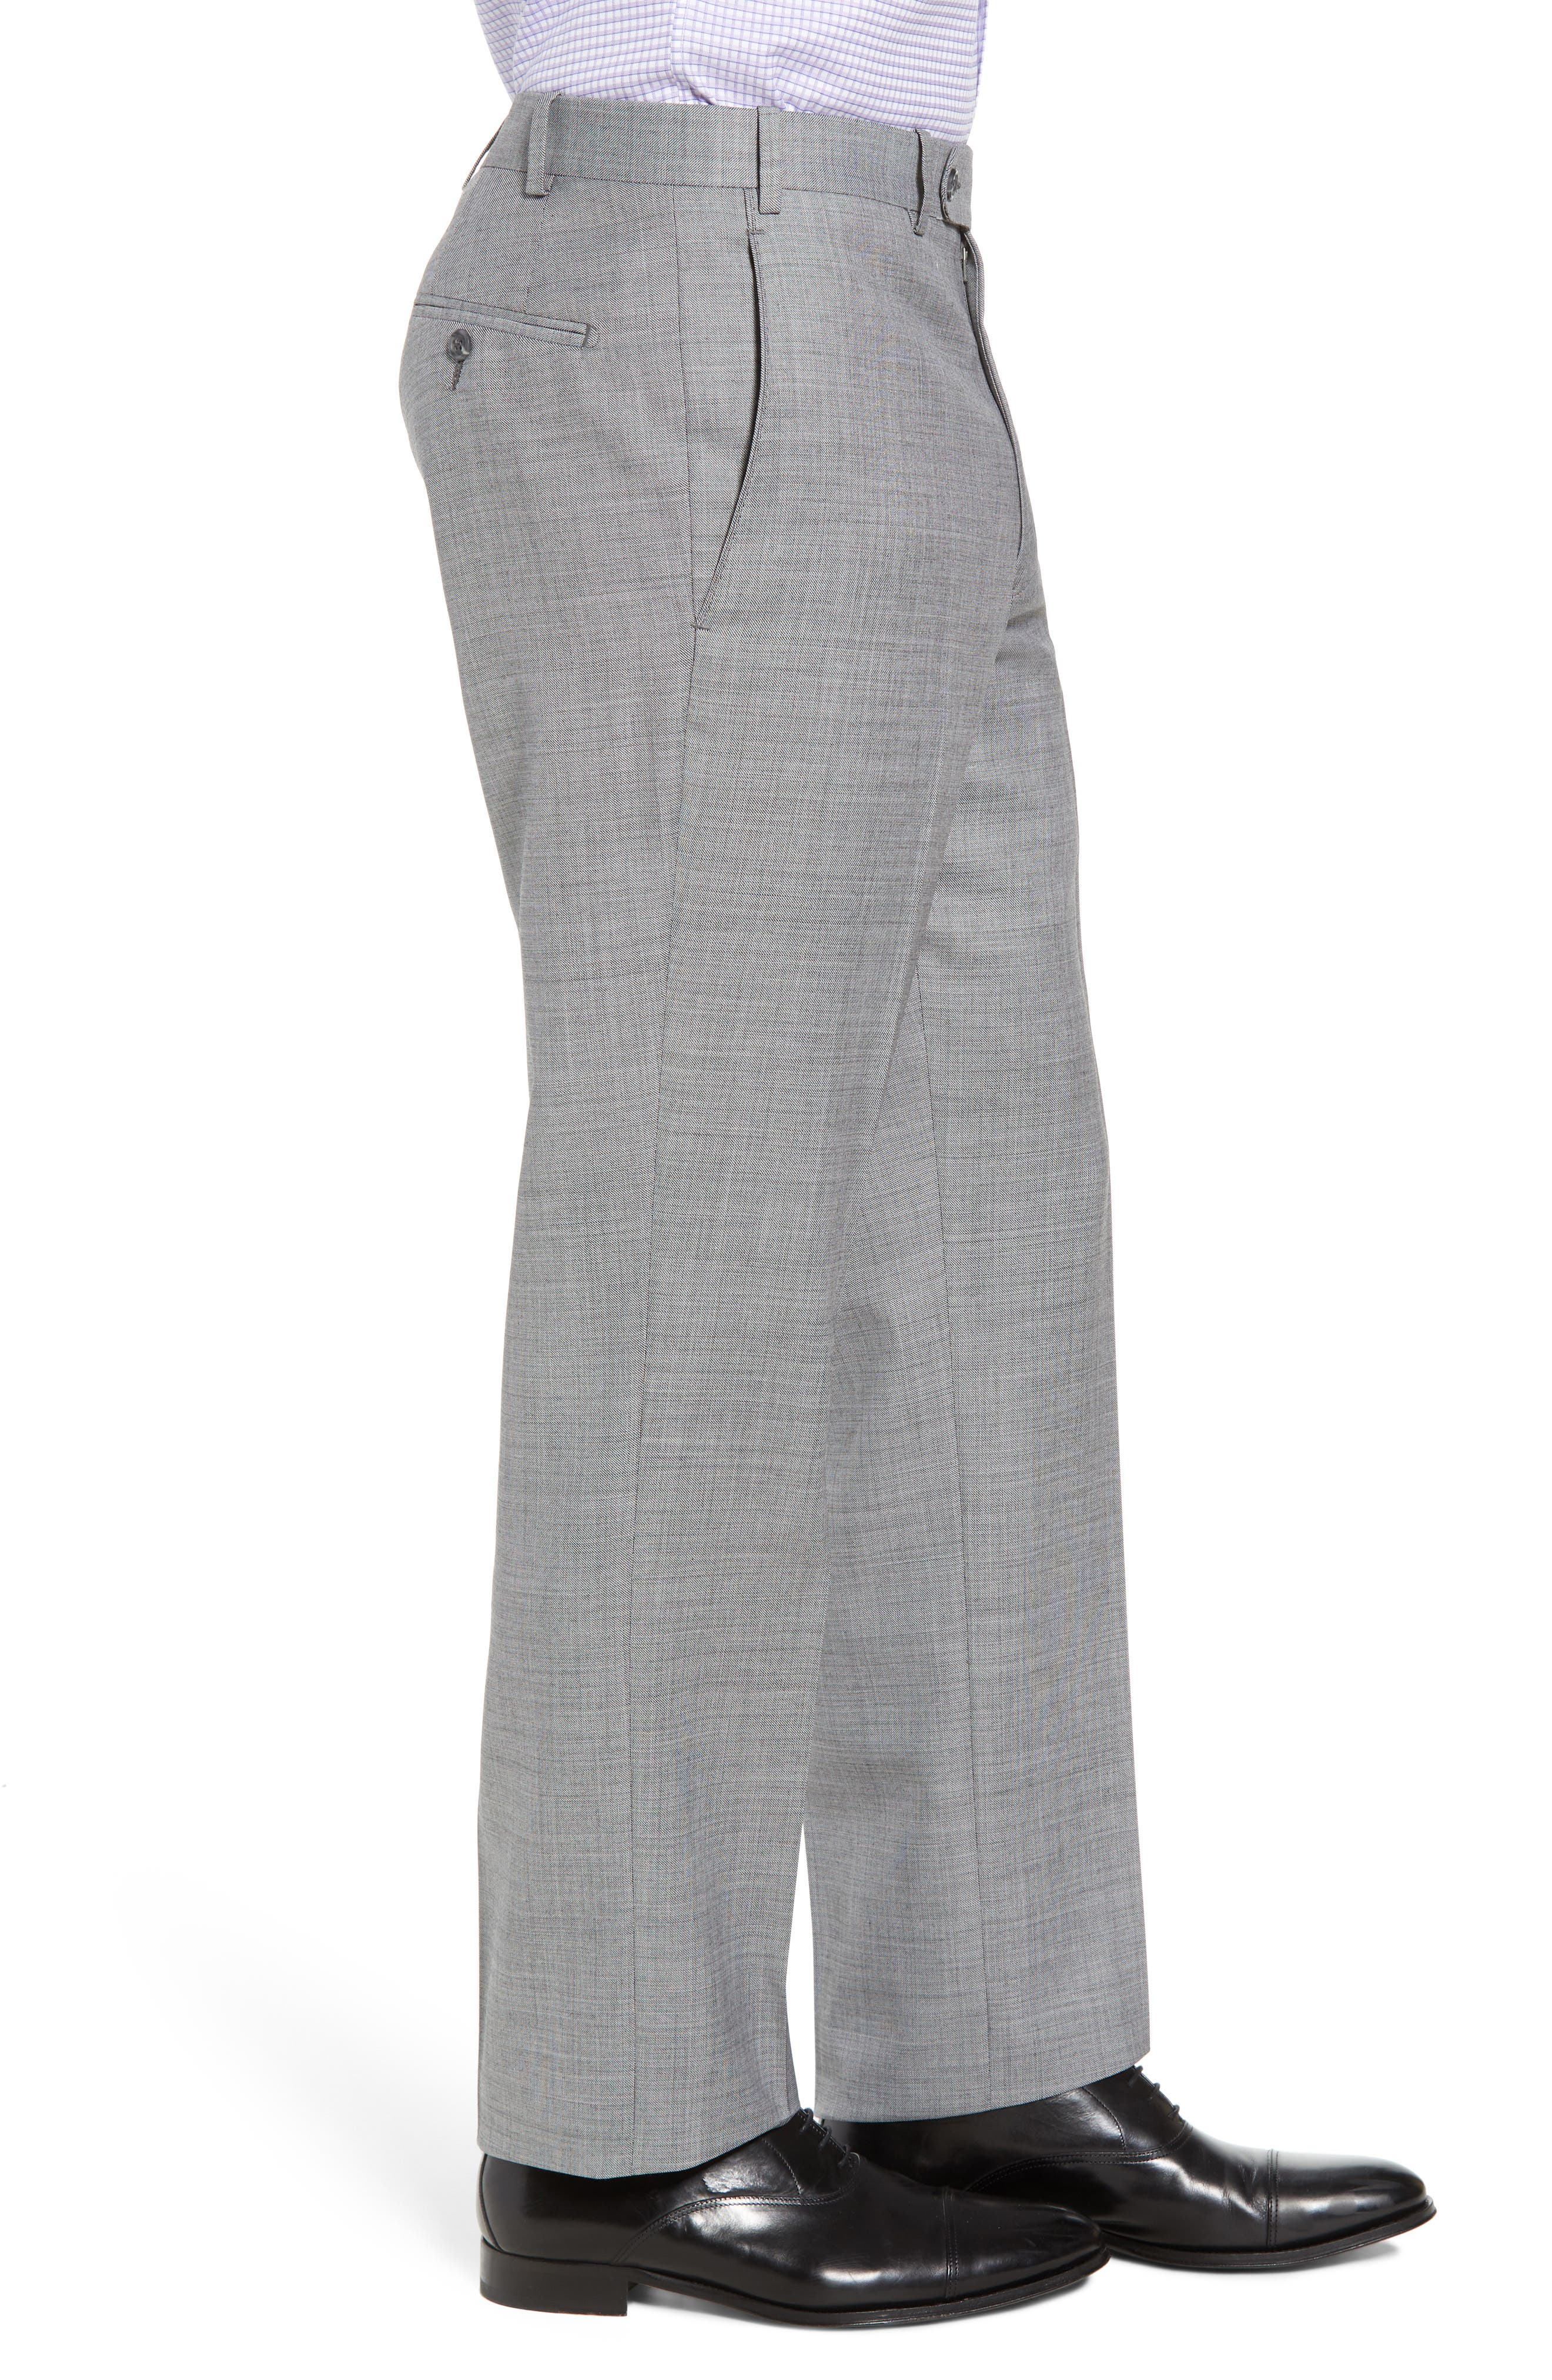 Torino Flat Front Solid Wool Trousers,                             Alternate thumbnail 8, color,